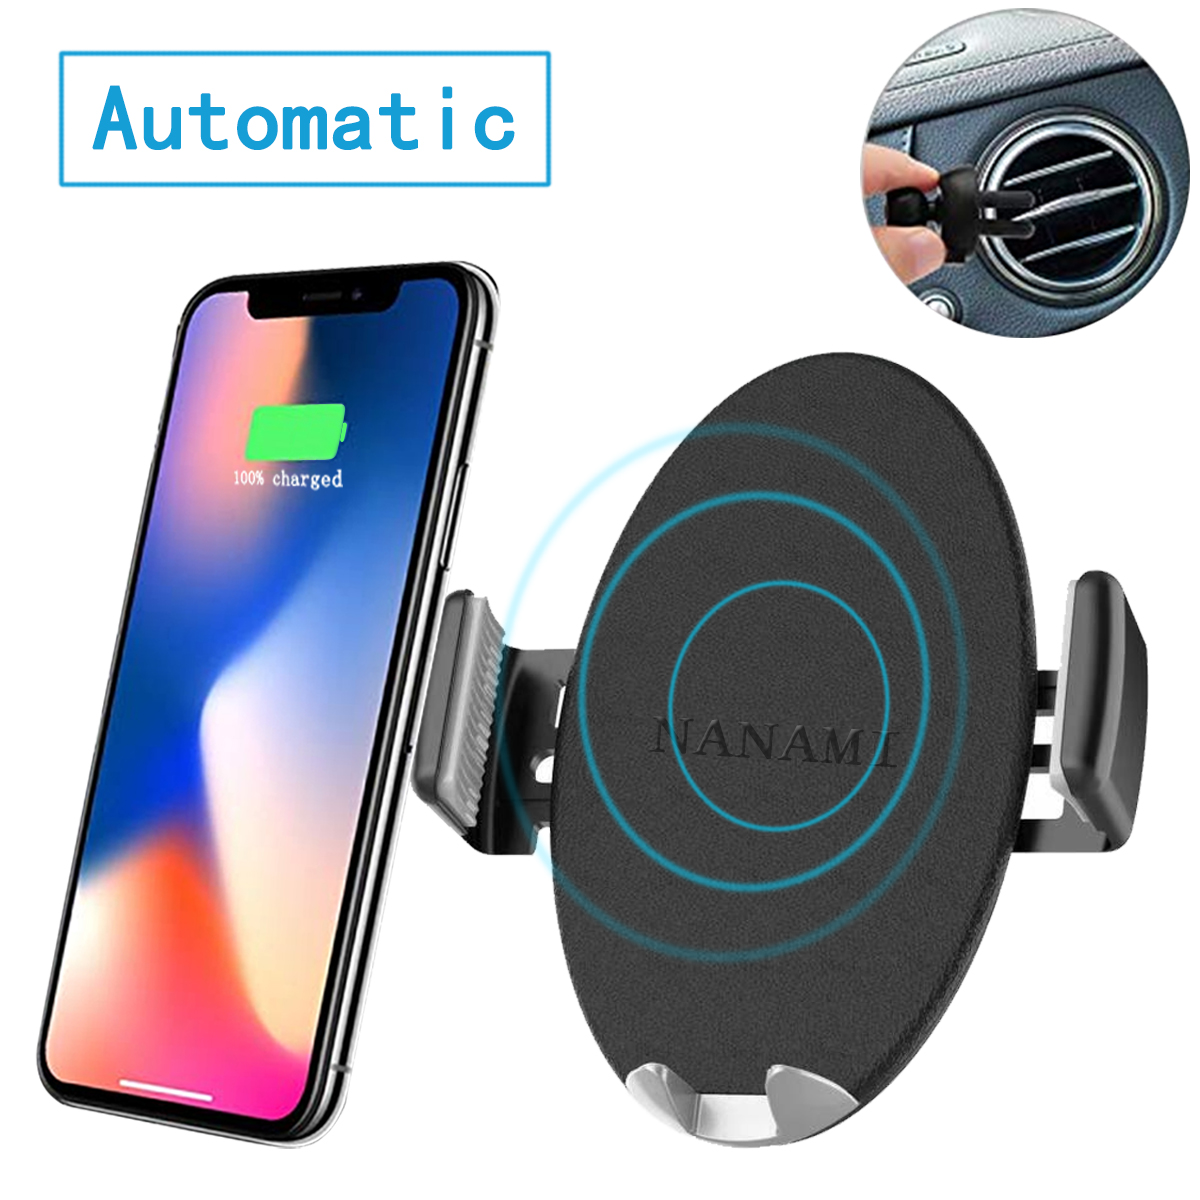 Automatic Sensor Wireless Car Charger, Qi Car Charger Mount, one-Touch Qi Fast Wireless Charging Air